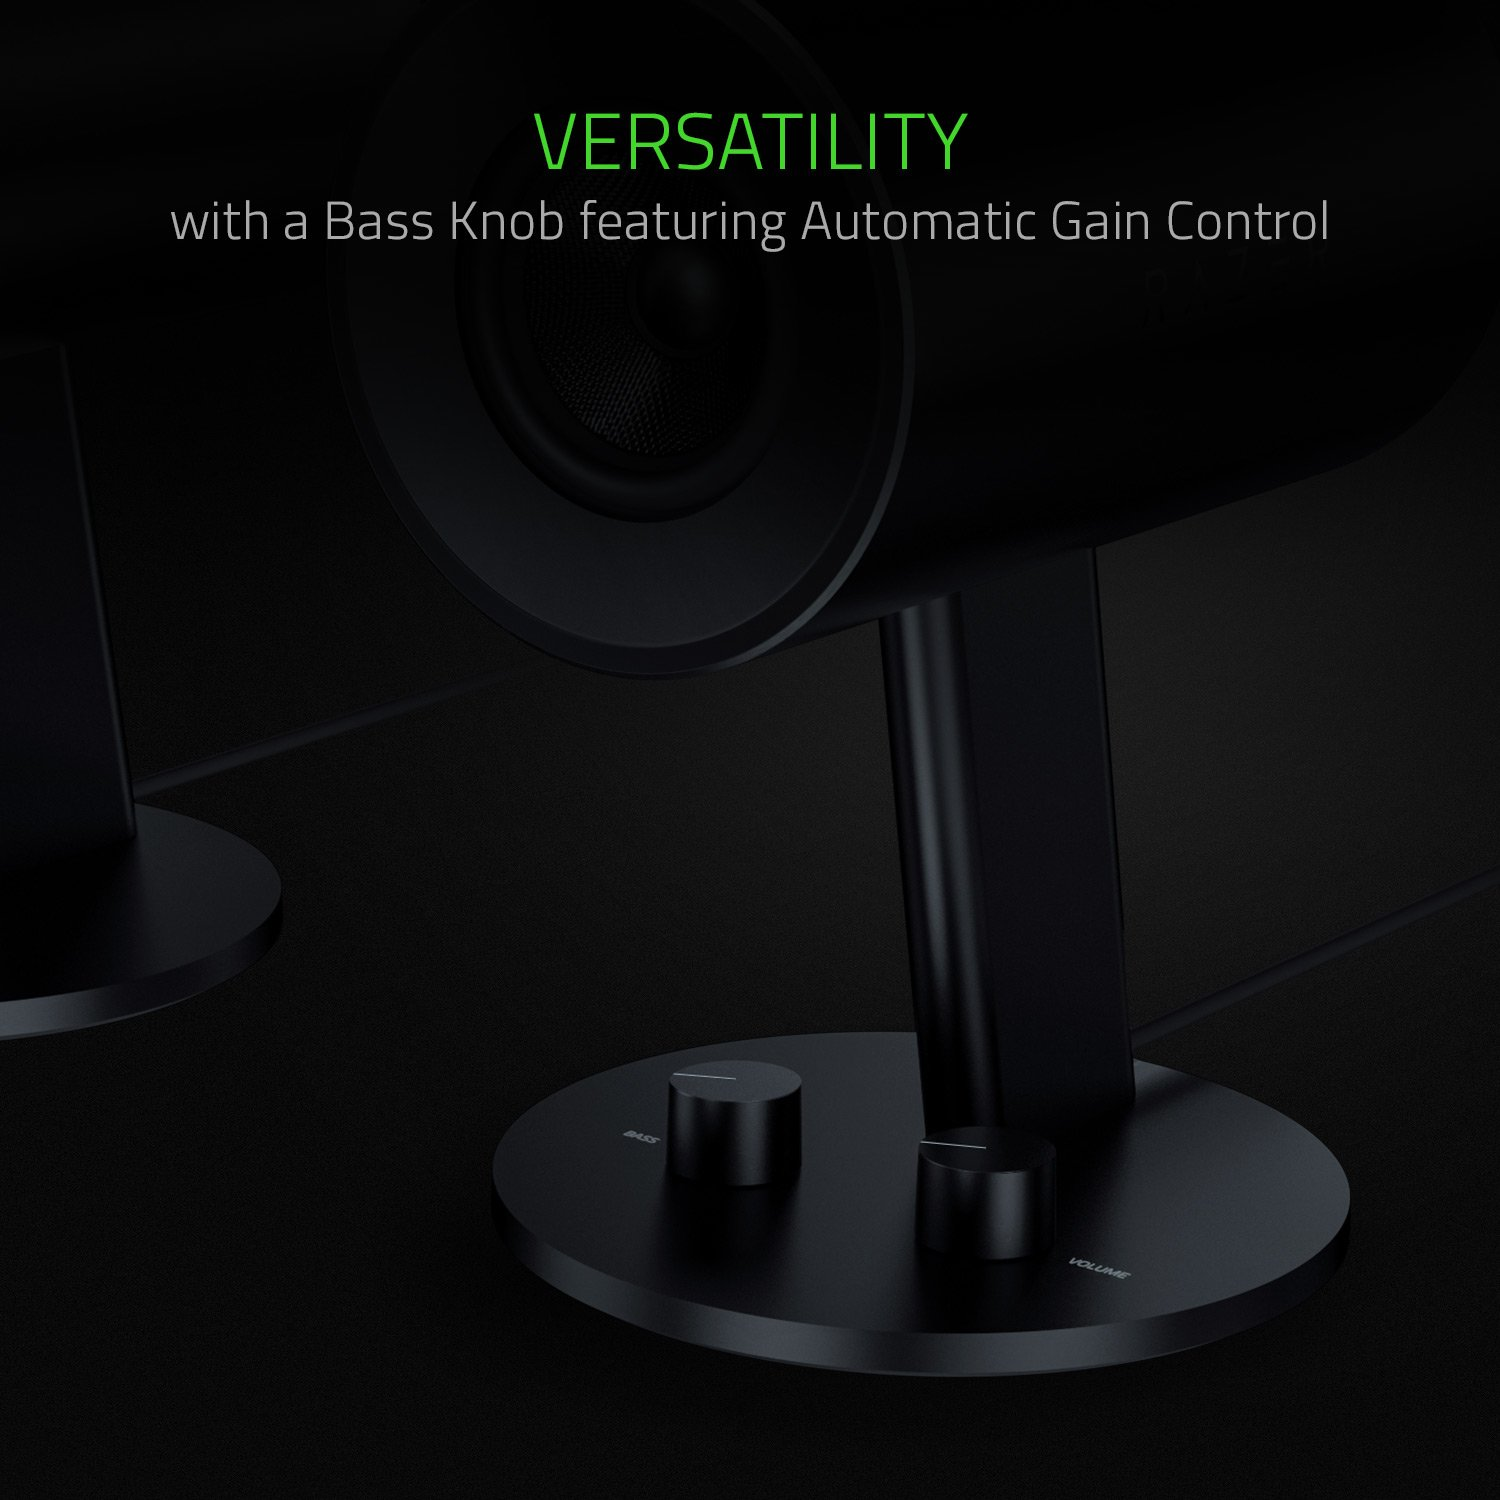 Razer Nommo - Computer Speakers, Rear Bass Ports for Full Range Gaming & Sound Immersion - Custom Woven Glass Fiber 3'' Drivers by Razer (Image #5)